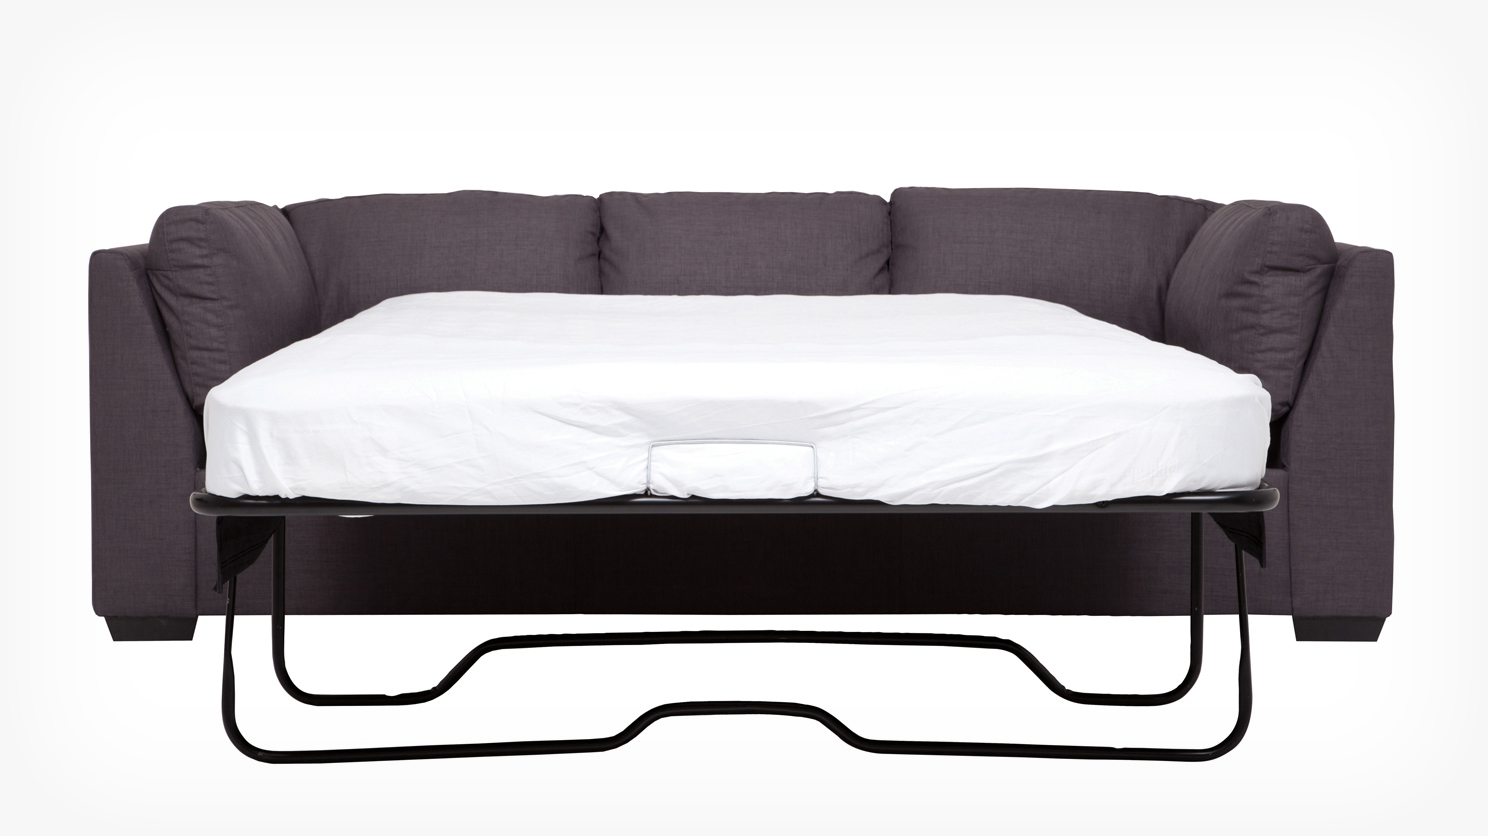 Double Sleeper Sofa for Double Functions